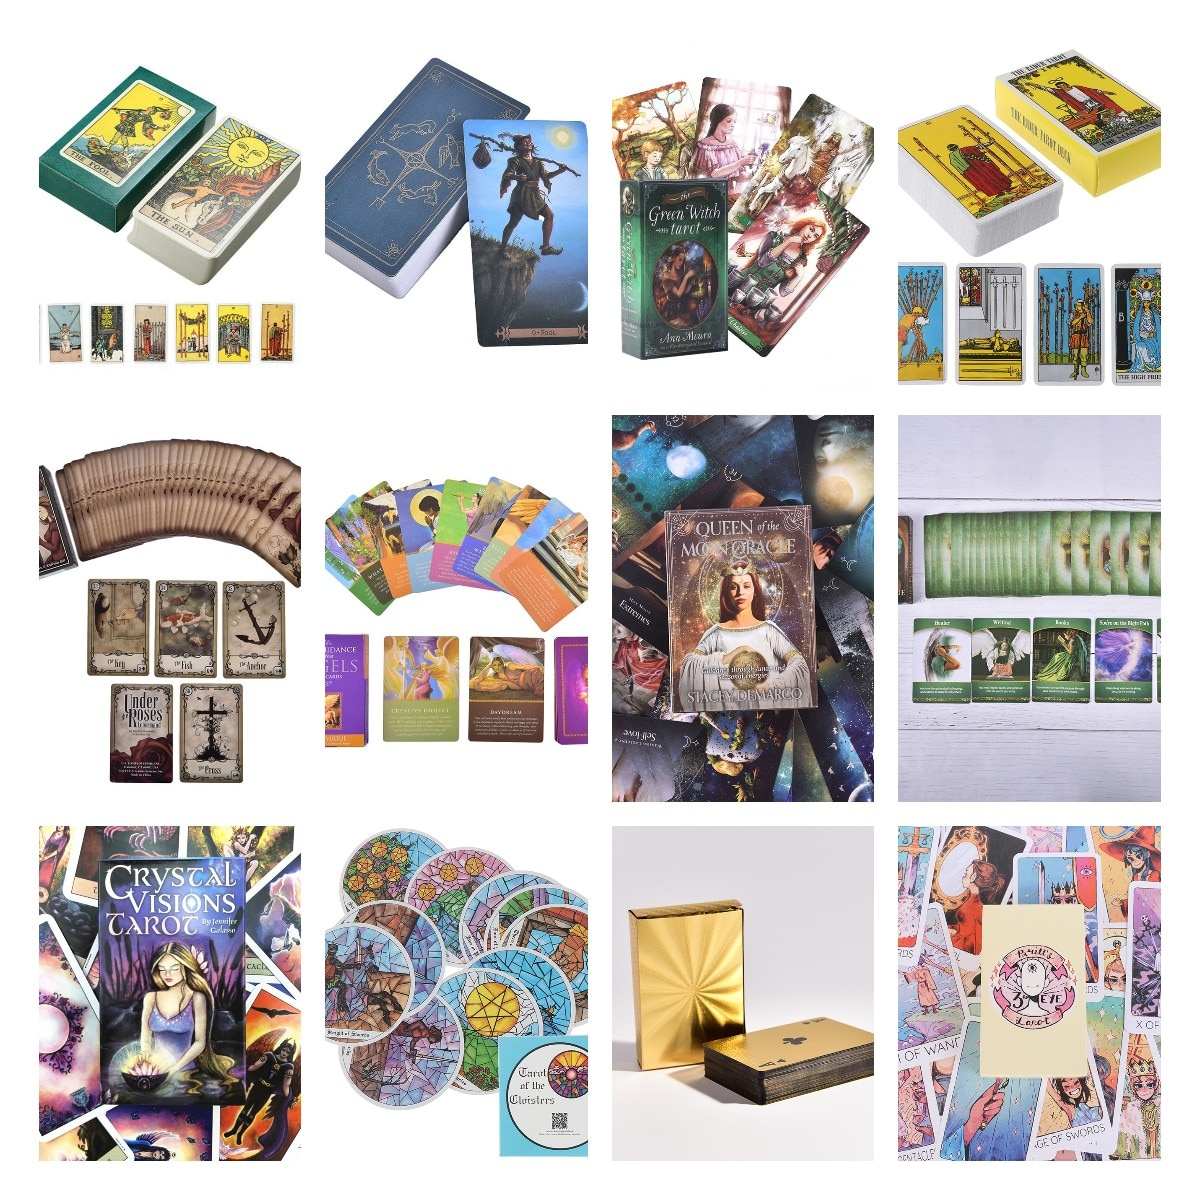 Фото - Modern Tarot Cards Deck Board Games English For Family Gift Party Playing Card Game Entertainment geistesing board game 2 8 players family party best gift for children english instructions cards game reaction blitz game